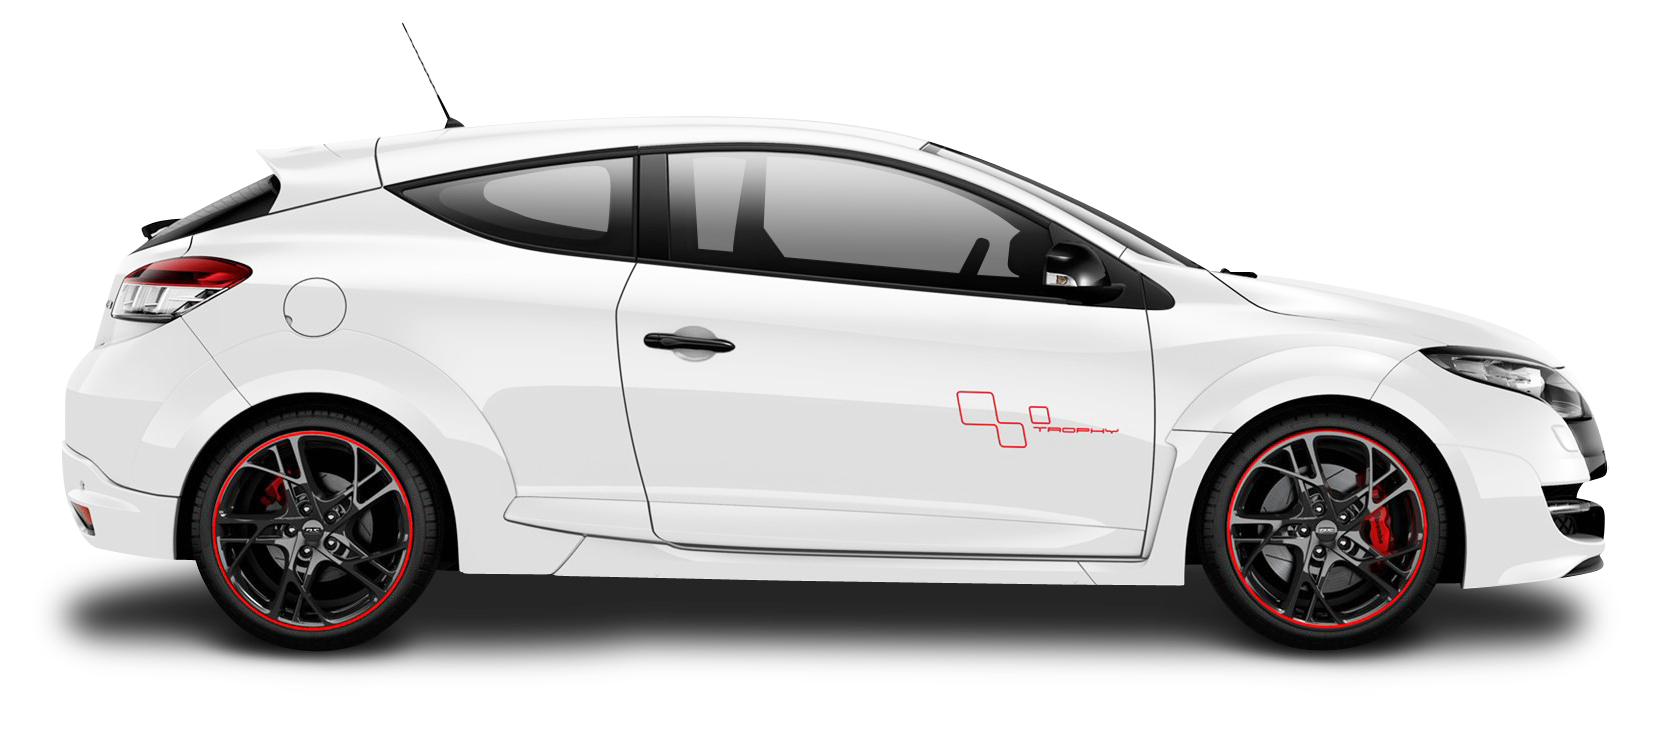 Renault Megane RS Trophy White Car PNG Image